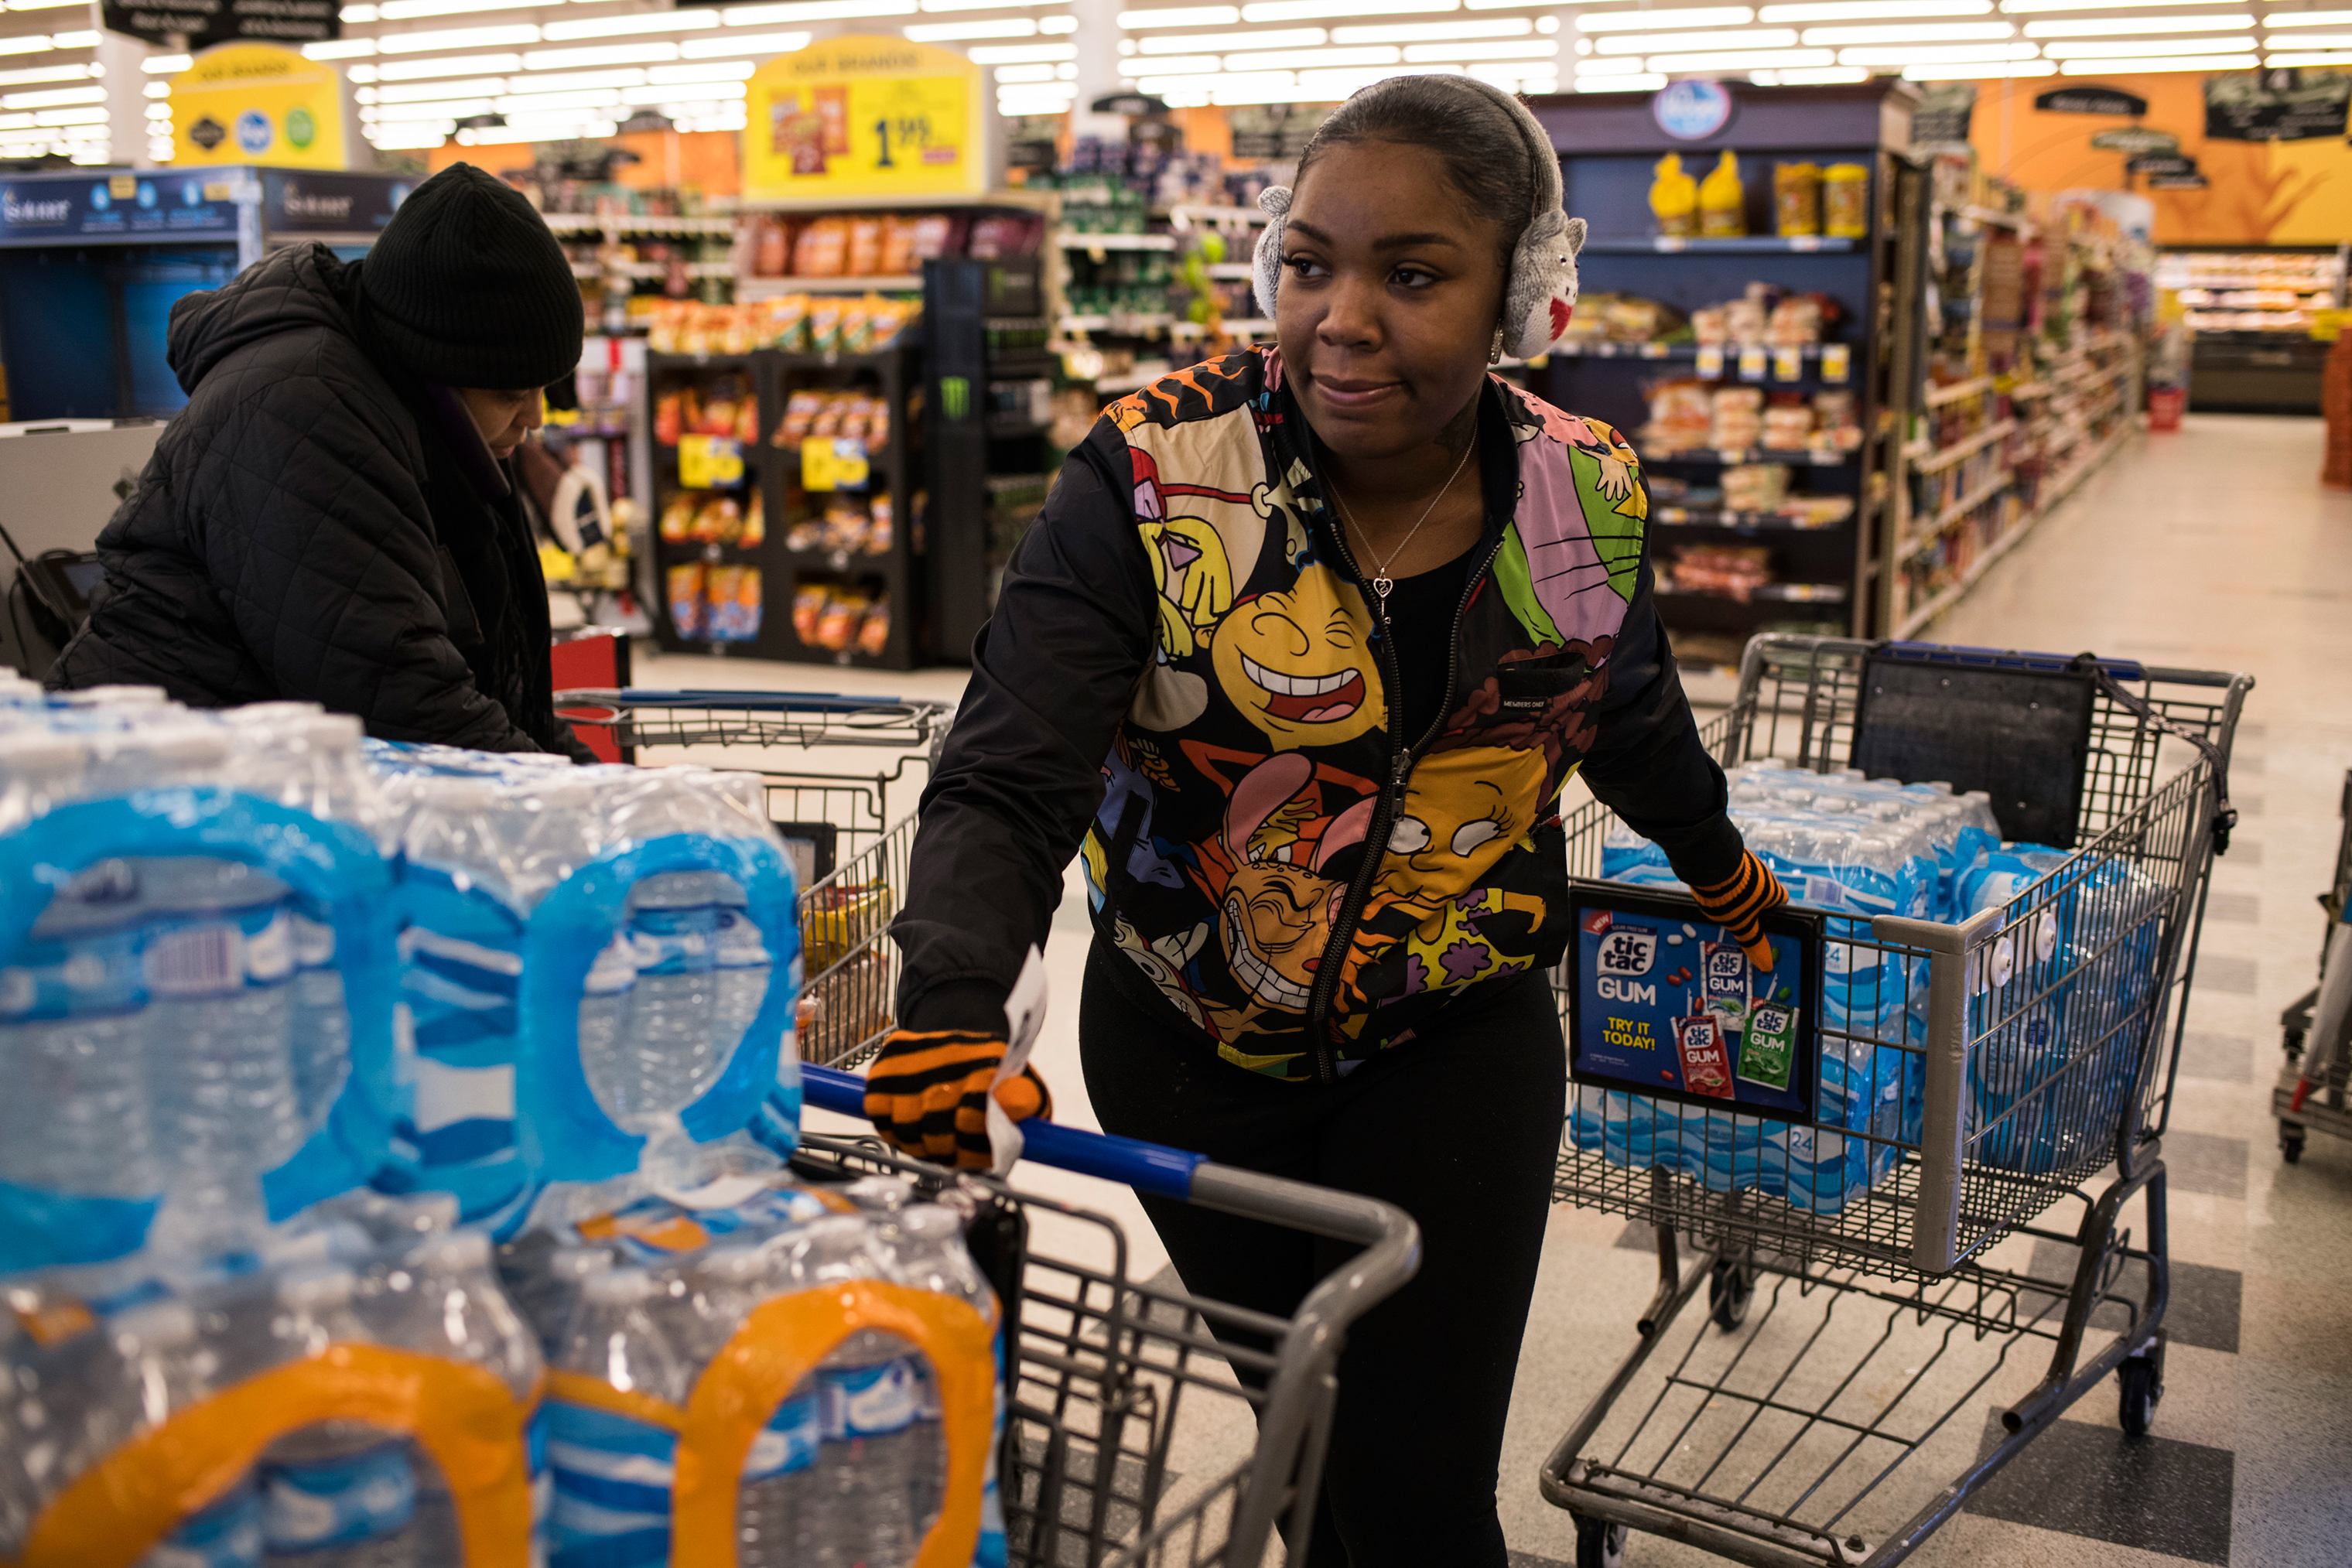 Flint residents ask Hawk for help getting safe water; she's seen here in January buying cases to distribute.